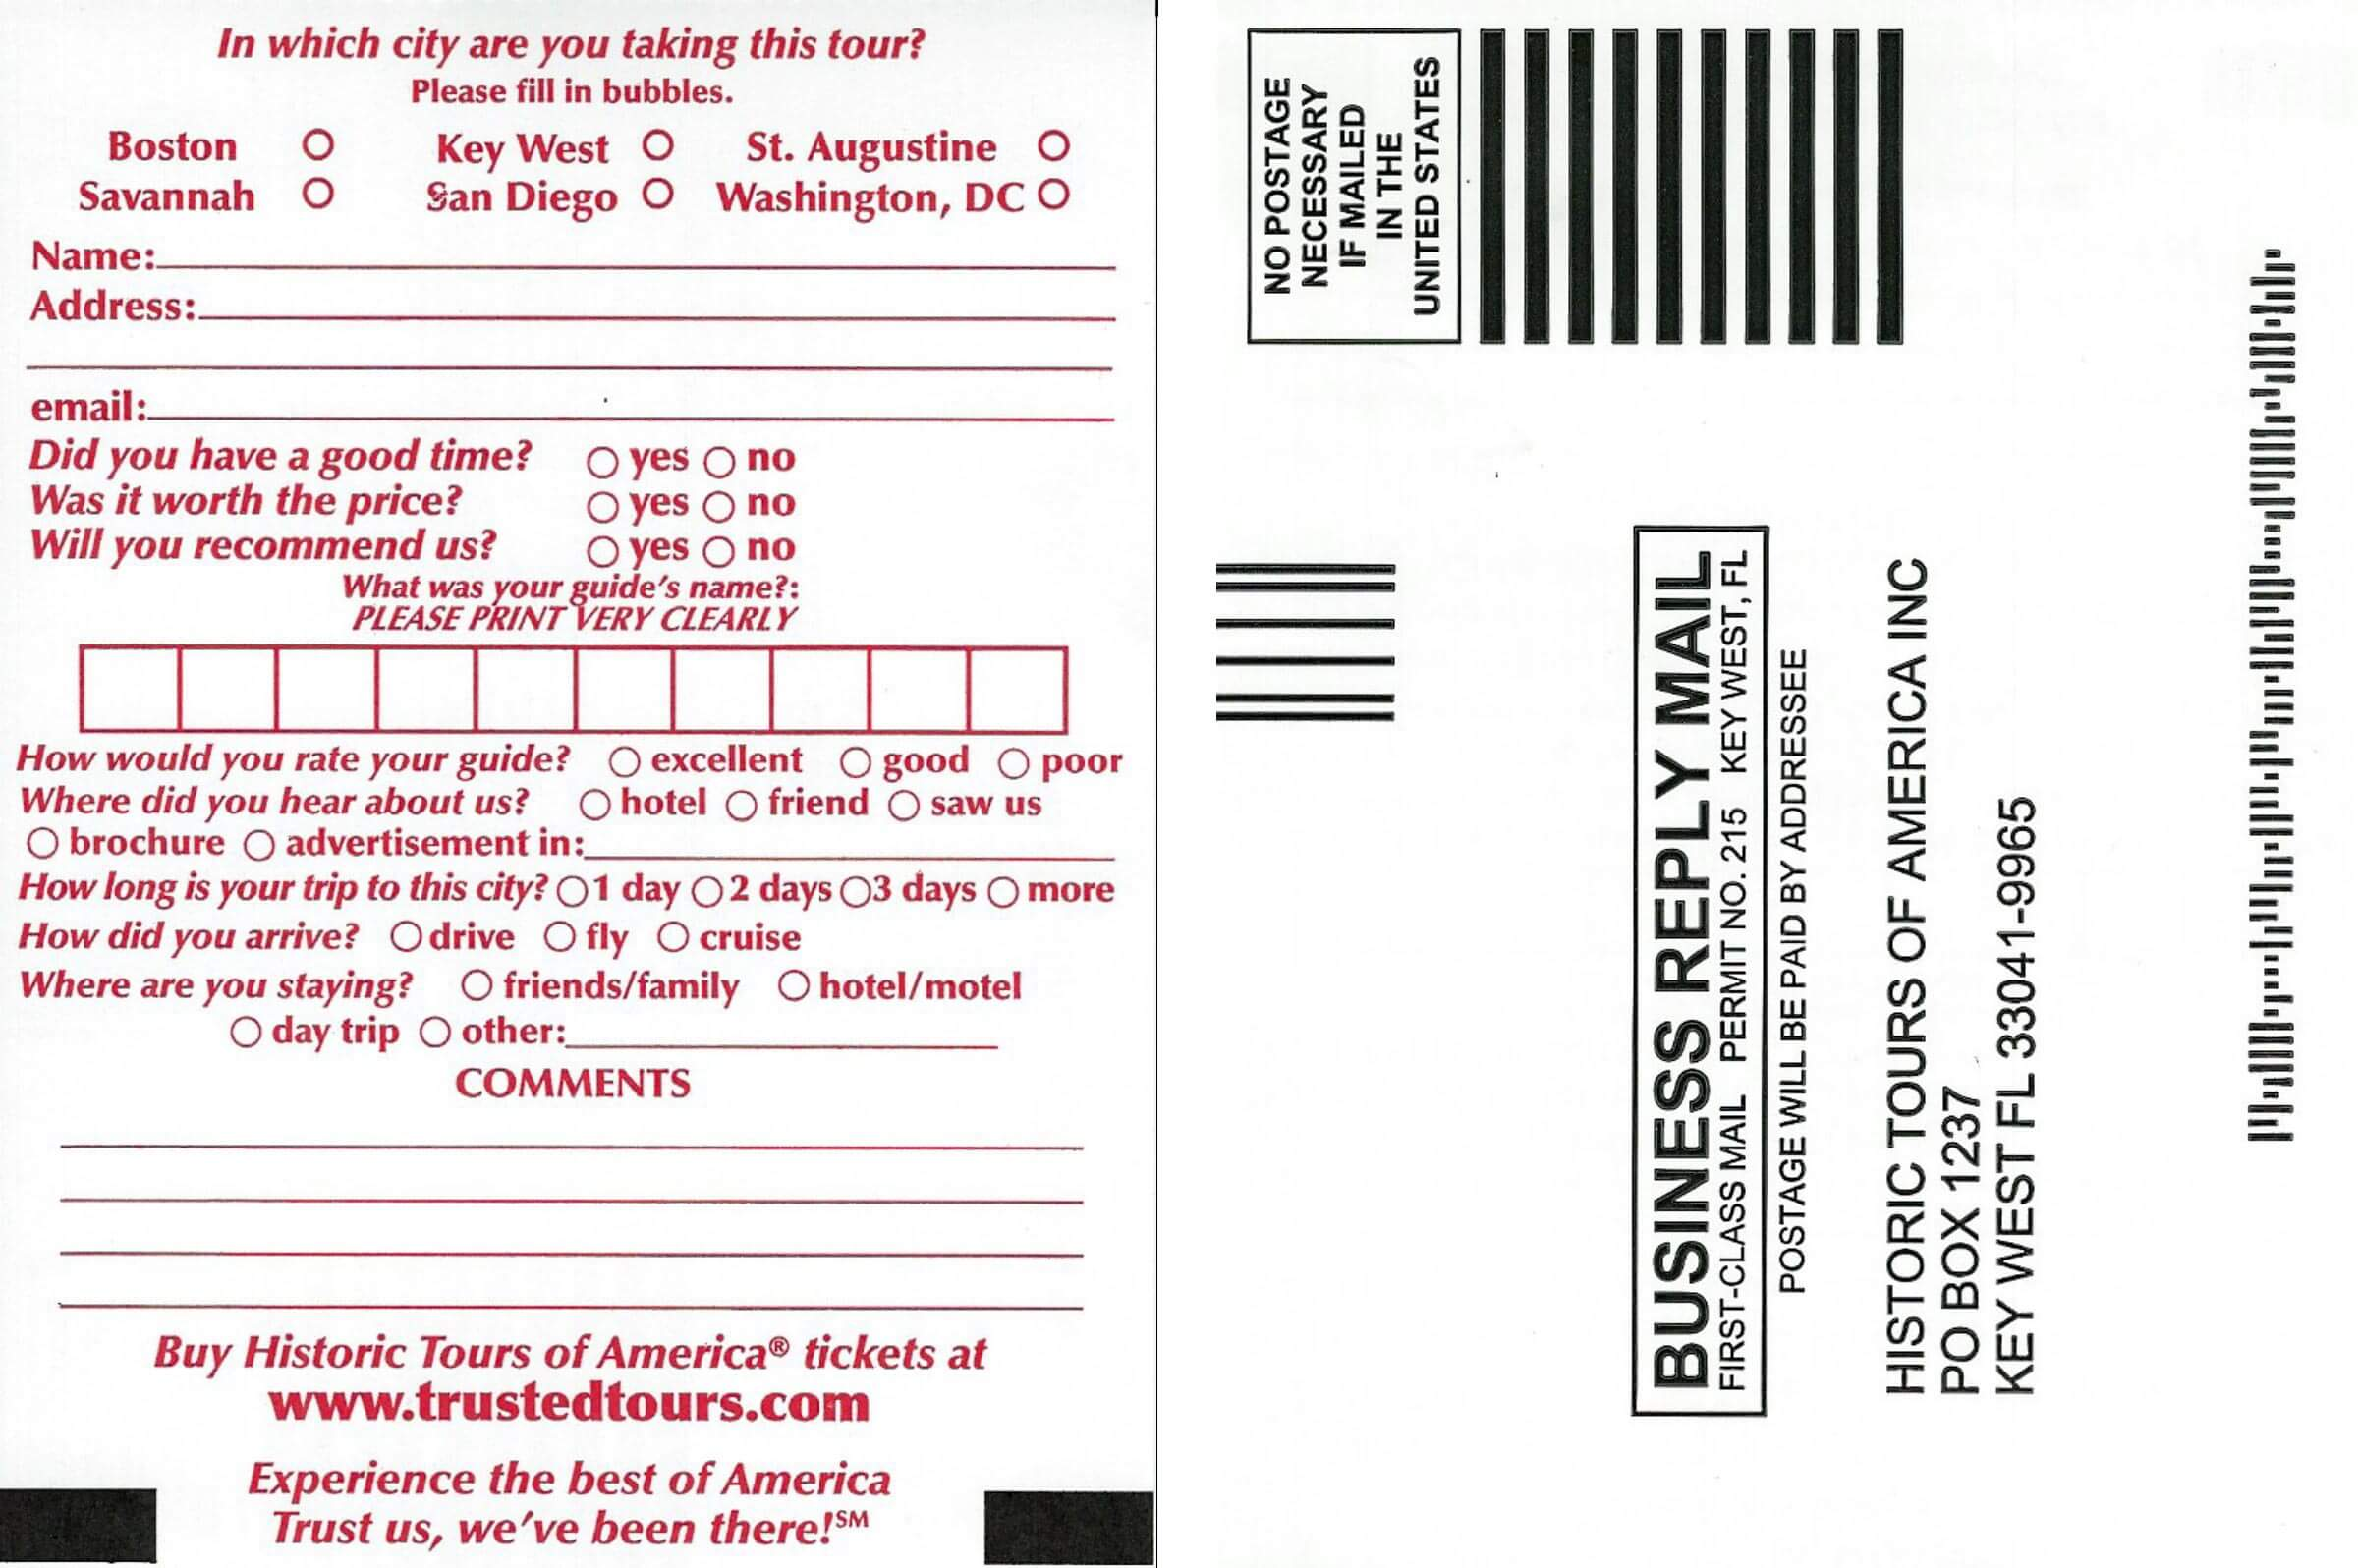 picture of a sample gateway ticket